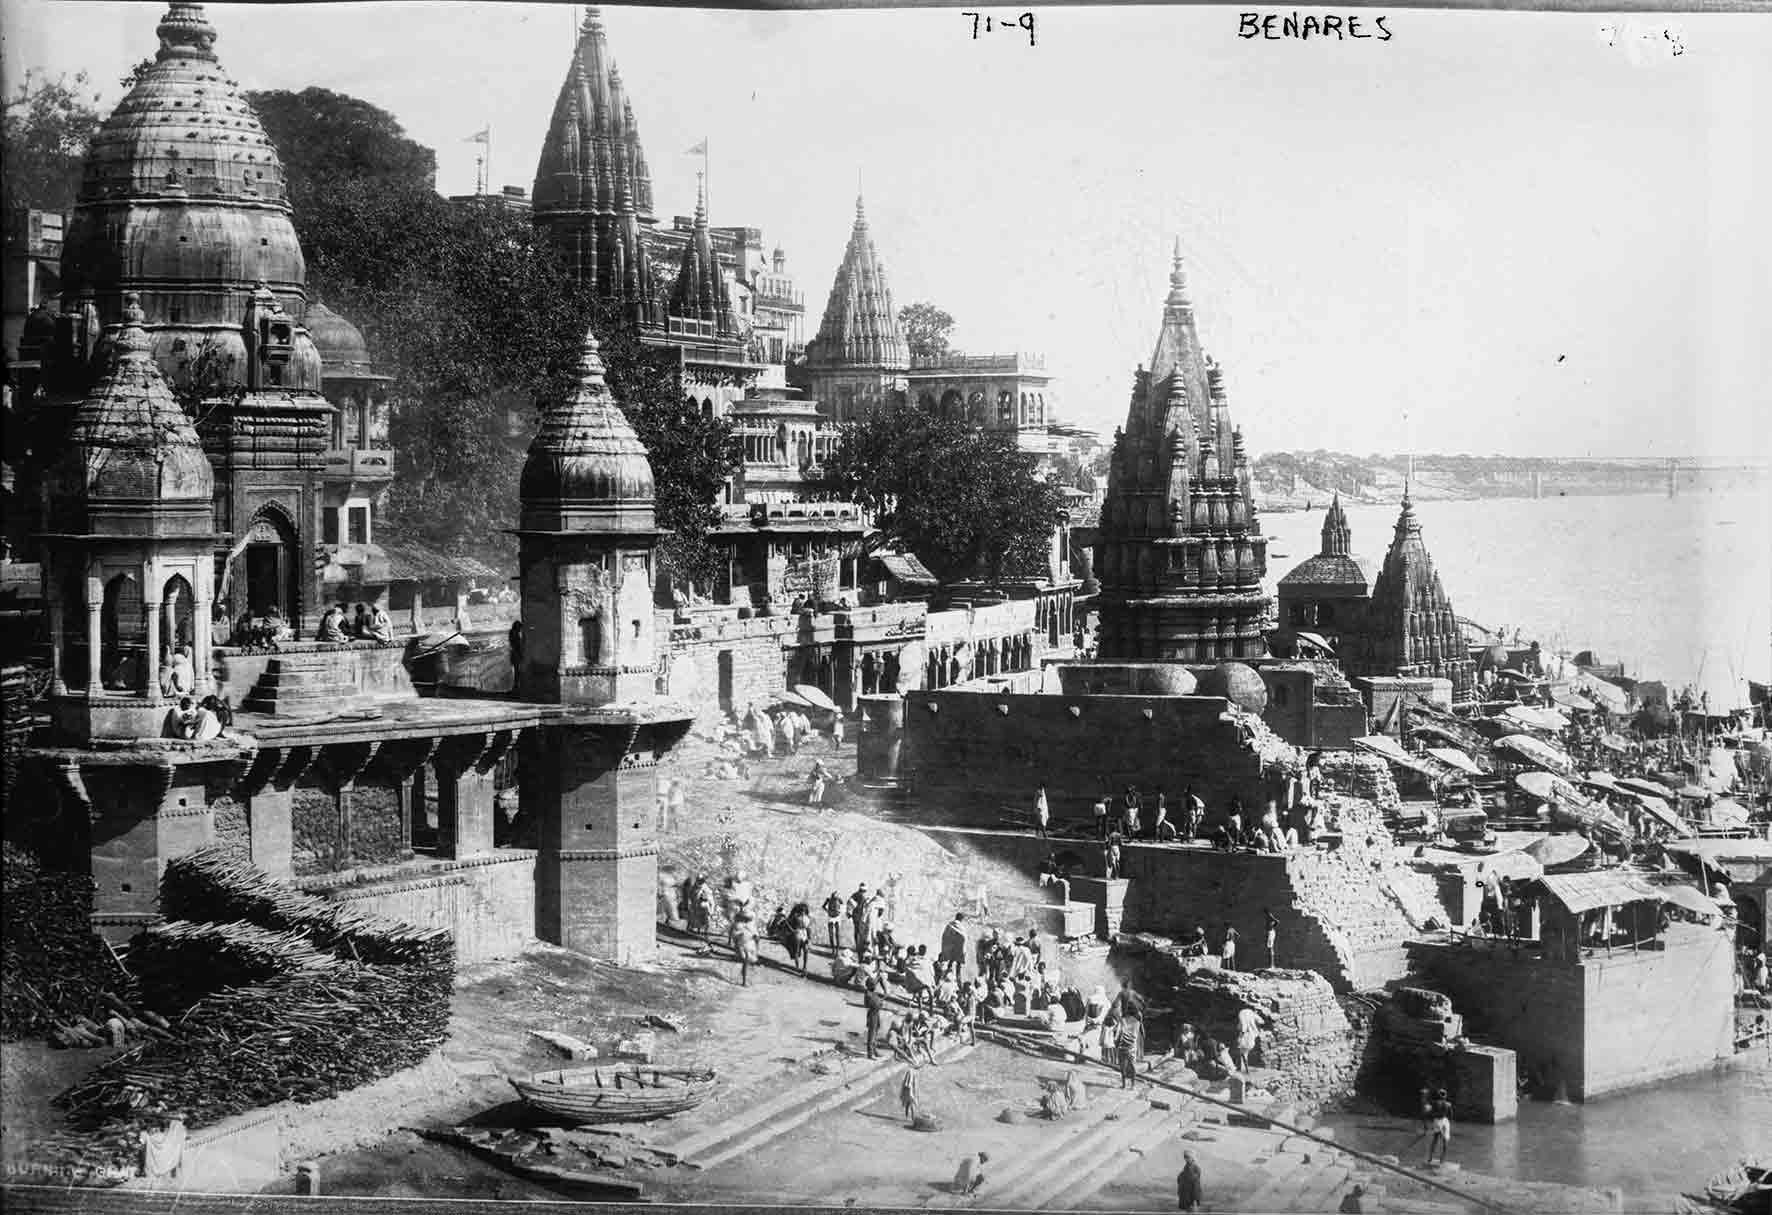 Benares, Varanasi, India. Photograph Taken In 1922. Courtesy Of Repository, Library Of Congress Prints And Photographs Division Washington, D.C USA.